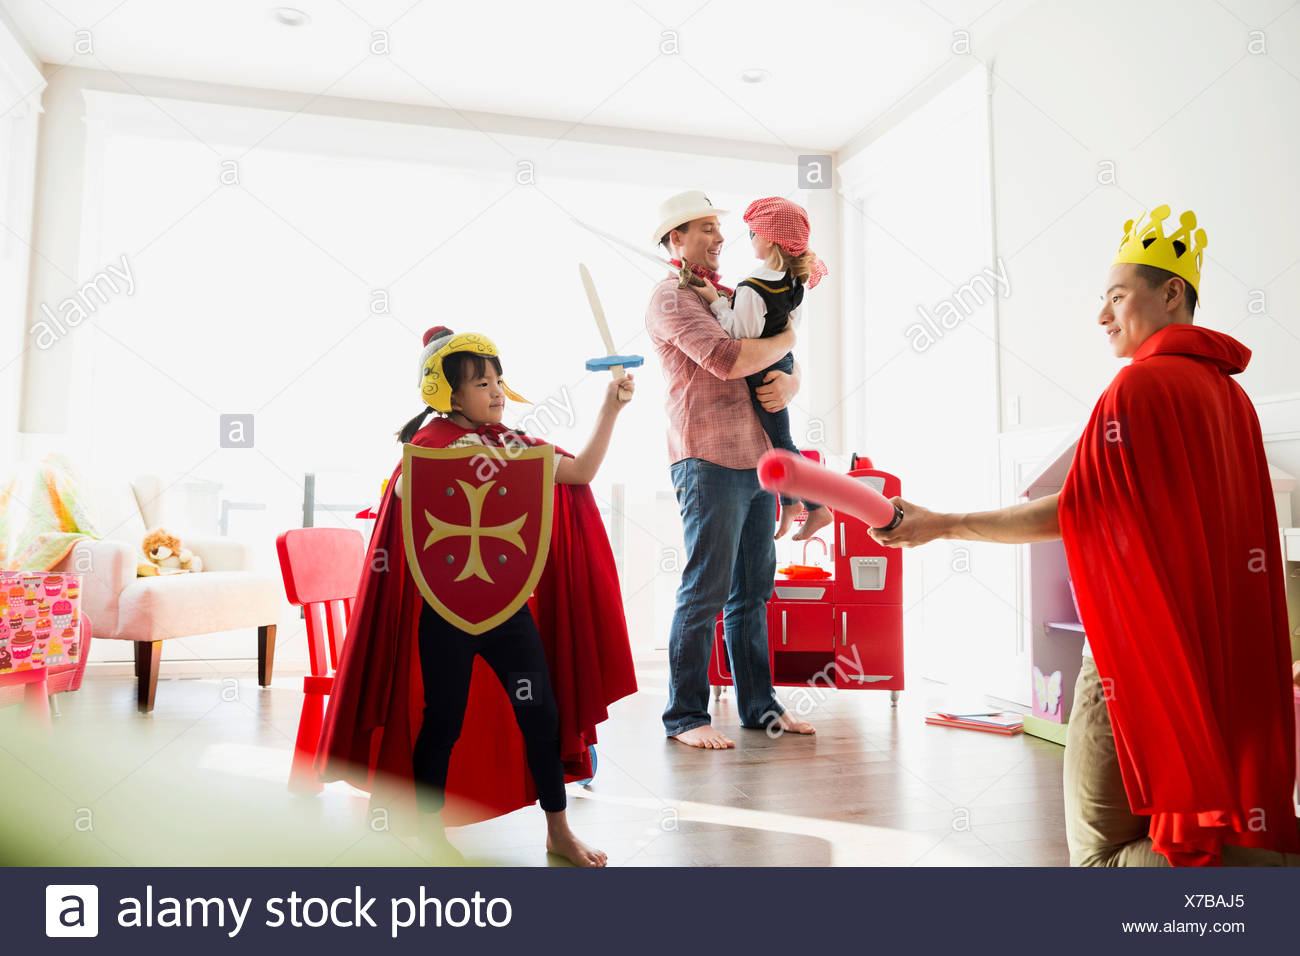 Father and daughter in costumes playing sword fight Stock Photo